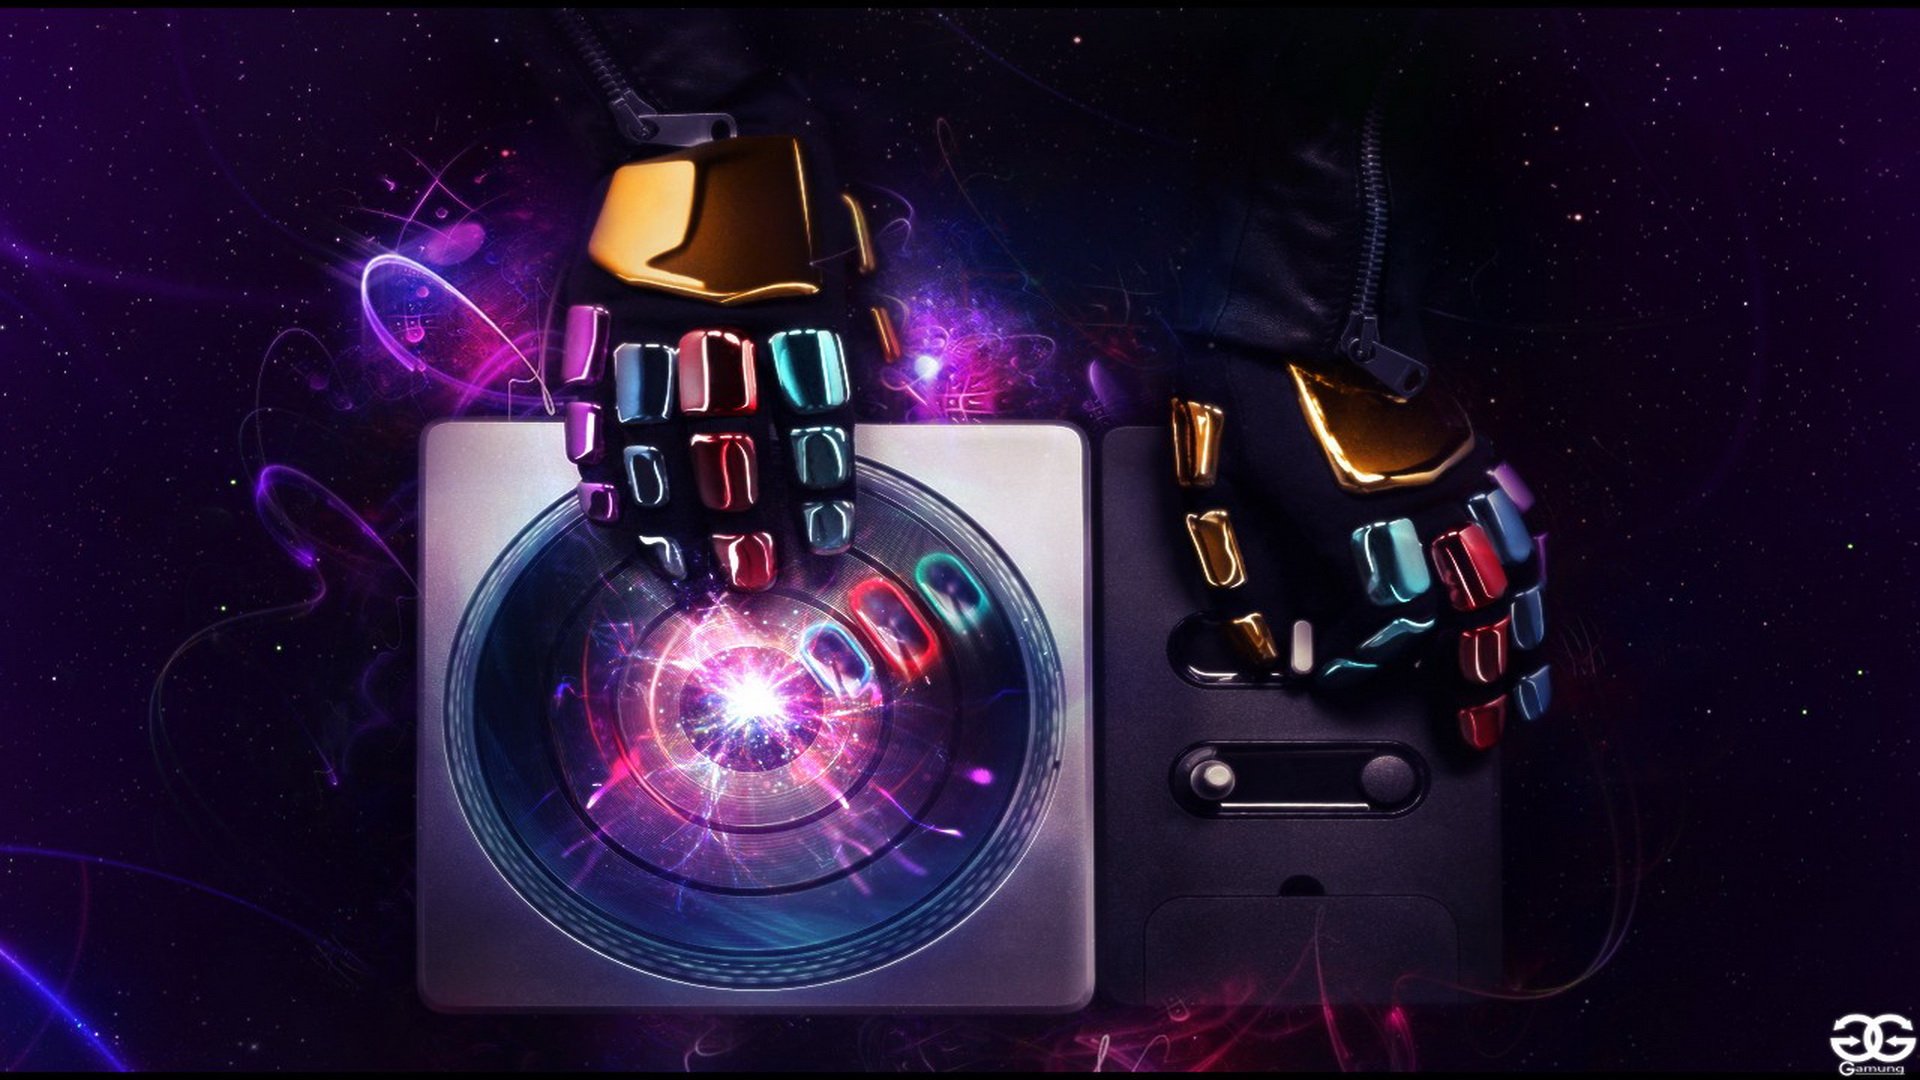 10 Best House Music Dj Wallpaper Full Hd 1080p For Pc: Daft Punk Wallpapers High Quality